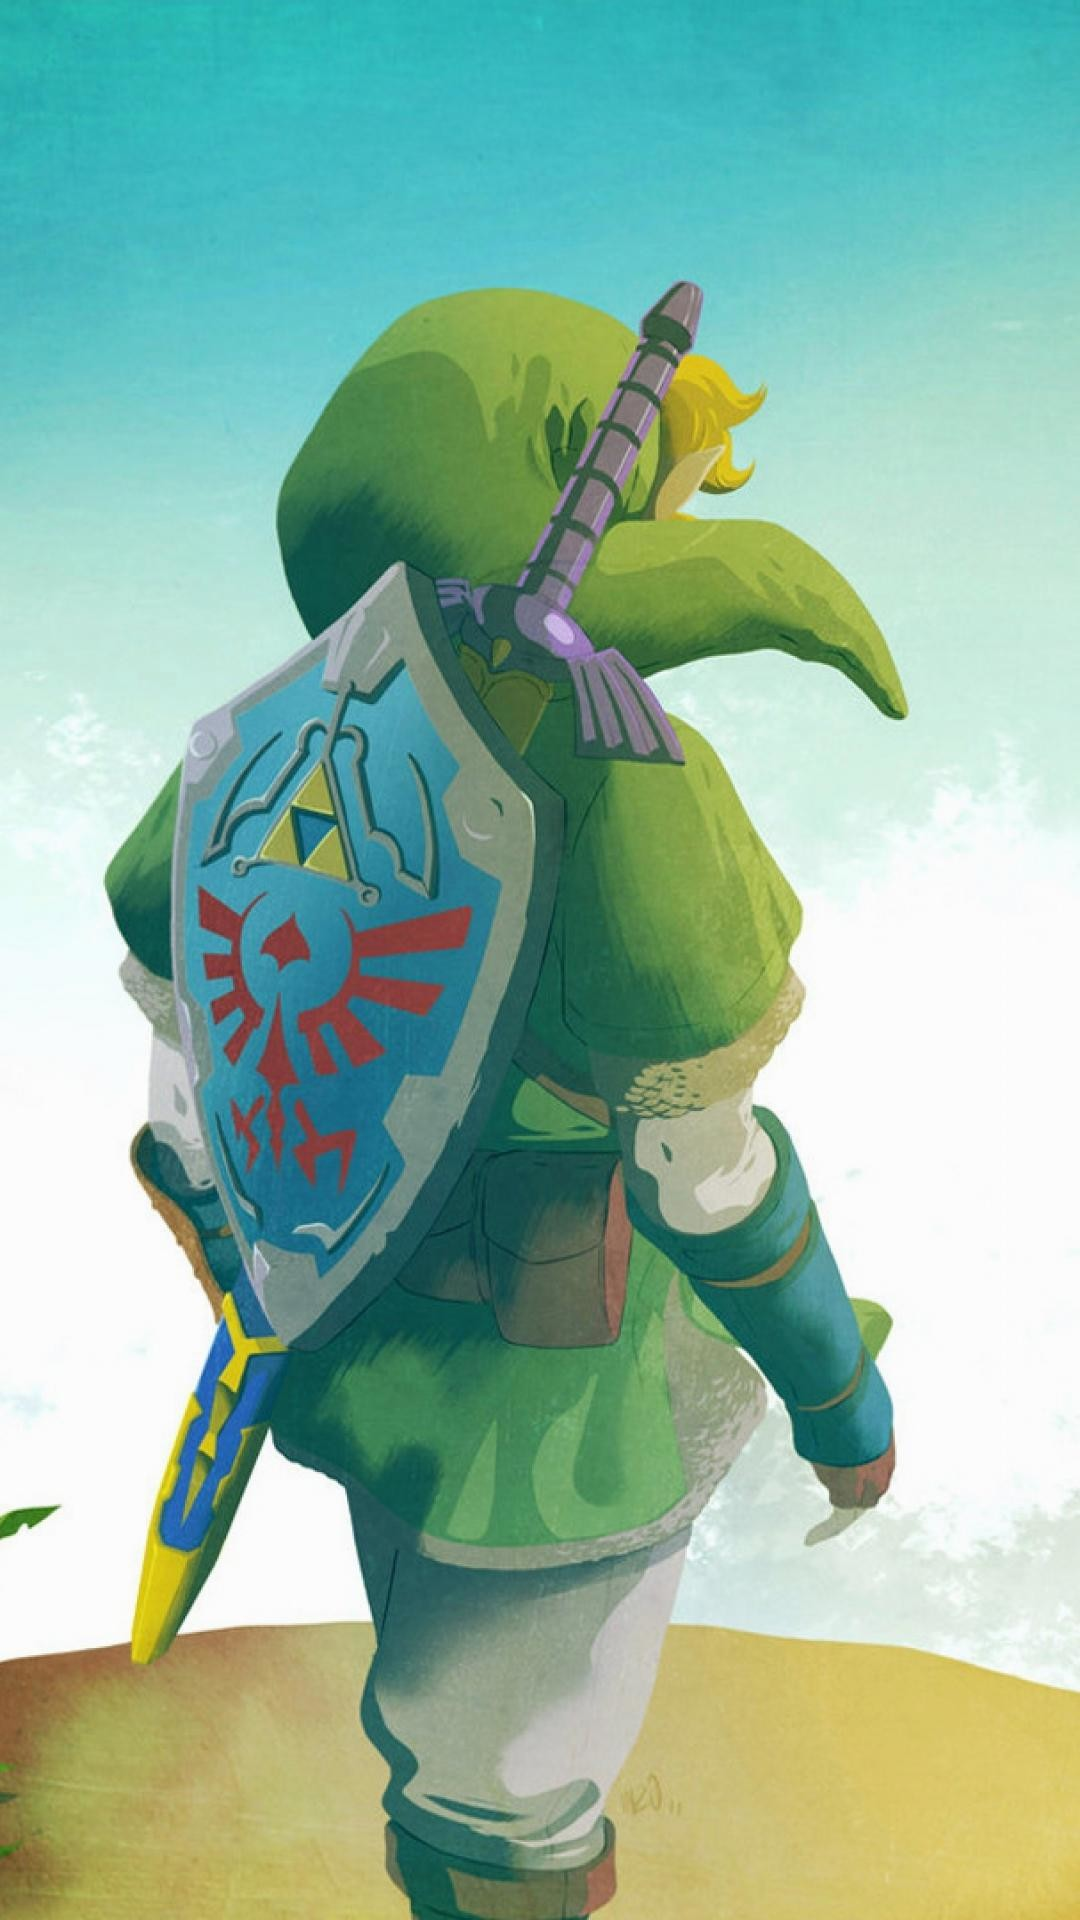 Alone Hd Wallpapers 1080p Legend Of Zelda Iphone Wallpaper 74 Images